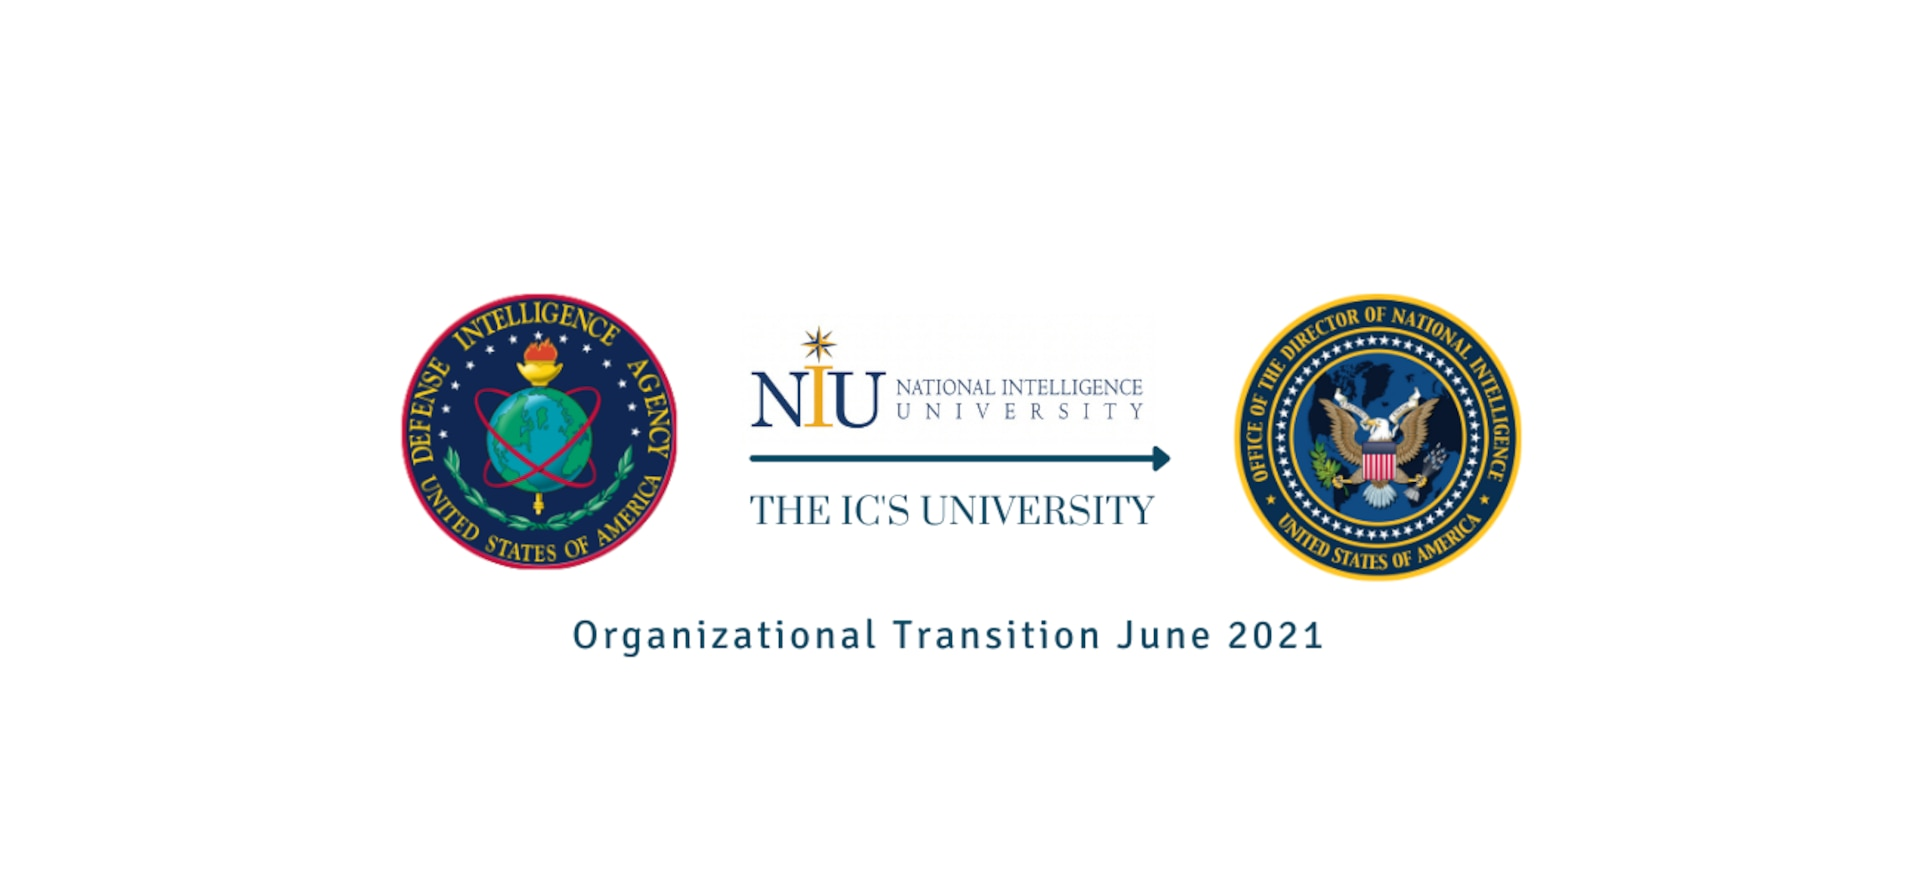 NIU will transfer from the Defense Intelligence Agency to the Office of the Director of National Intelligence on June 20.